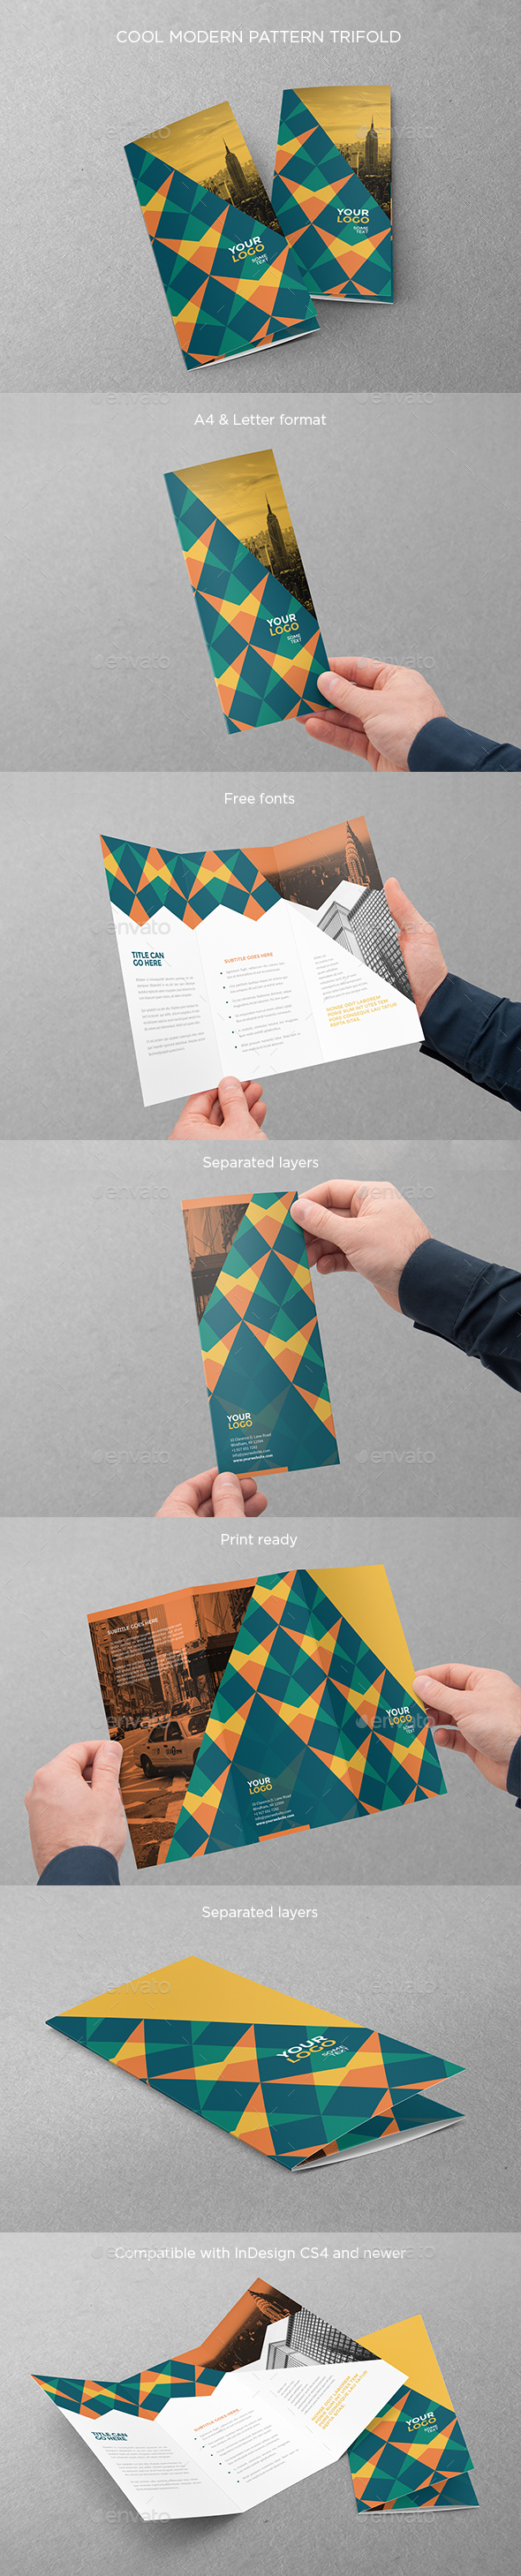 Cool Modern Pattern Trifold - Brochures Print Templates